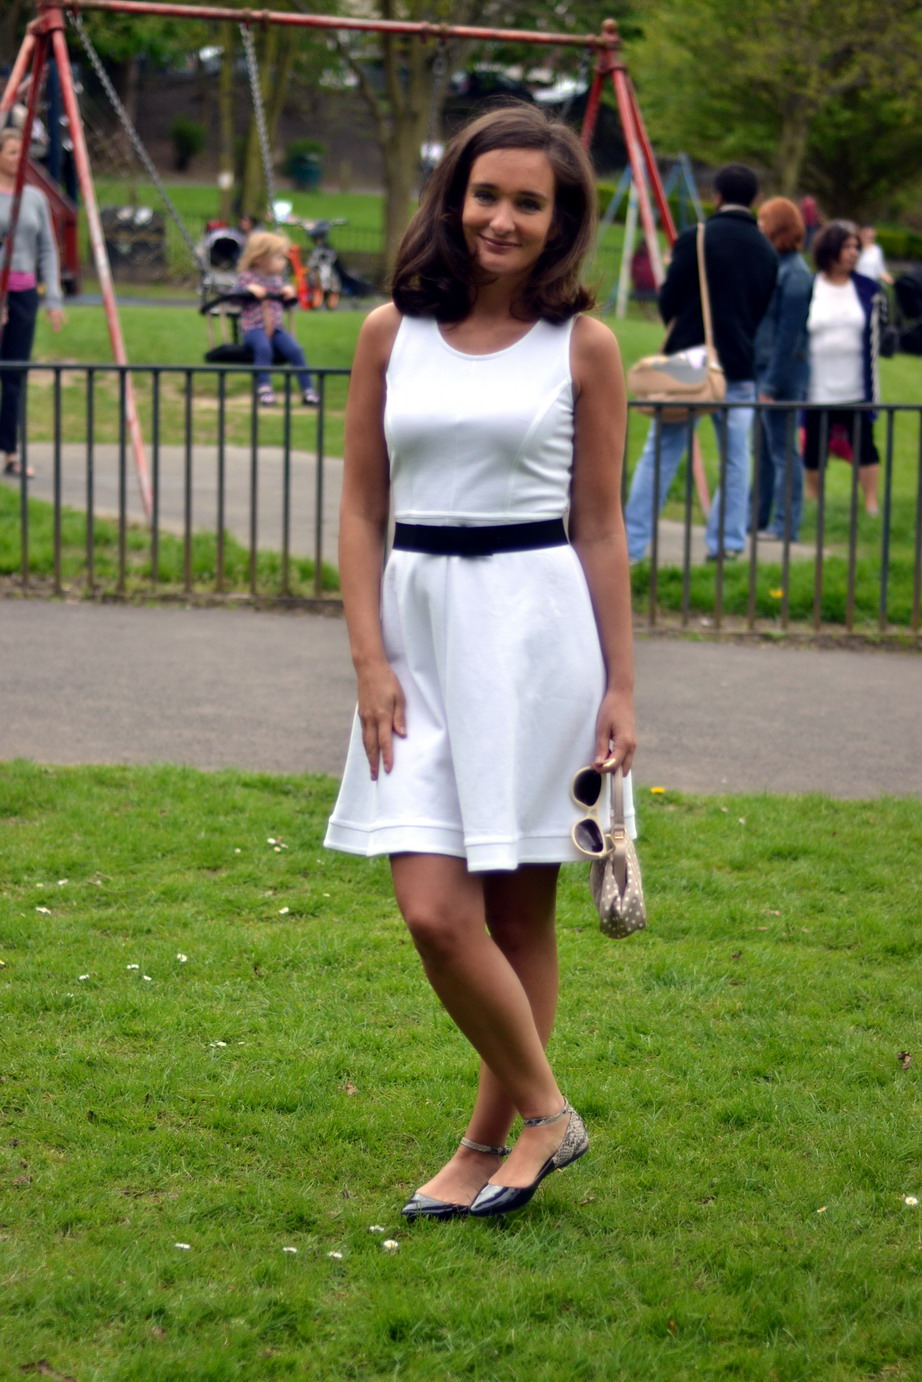 White sunglasses from Moschino, black patent flats from BCBG, dress and belt from Max & Co